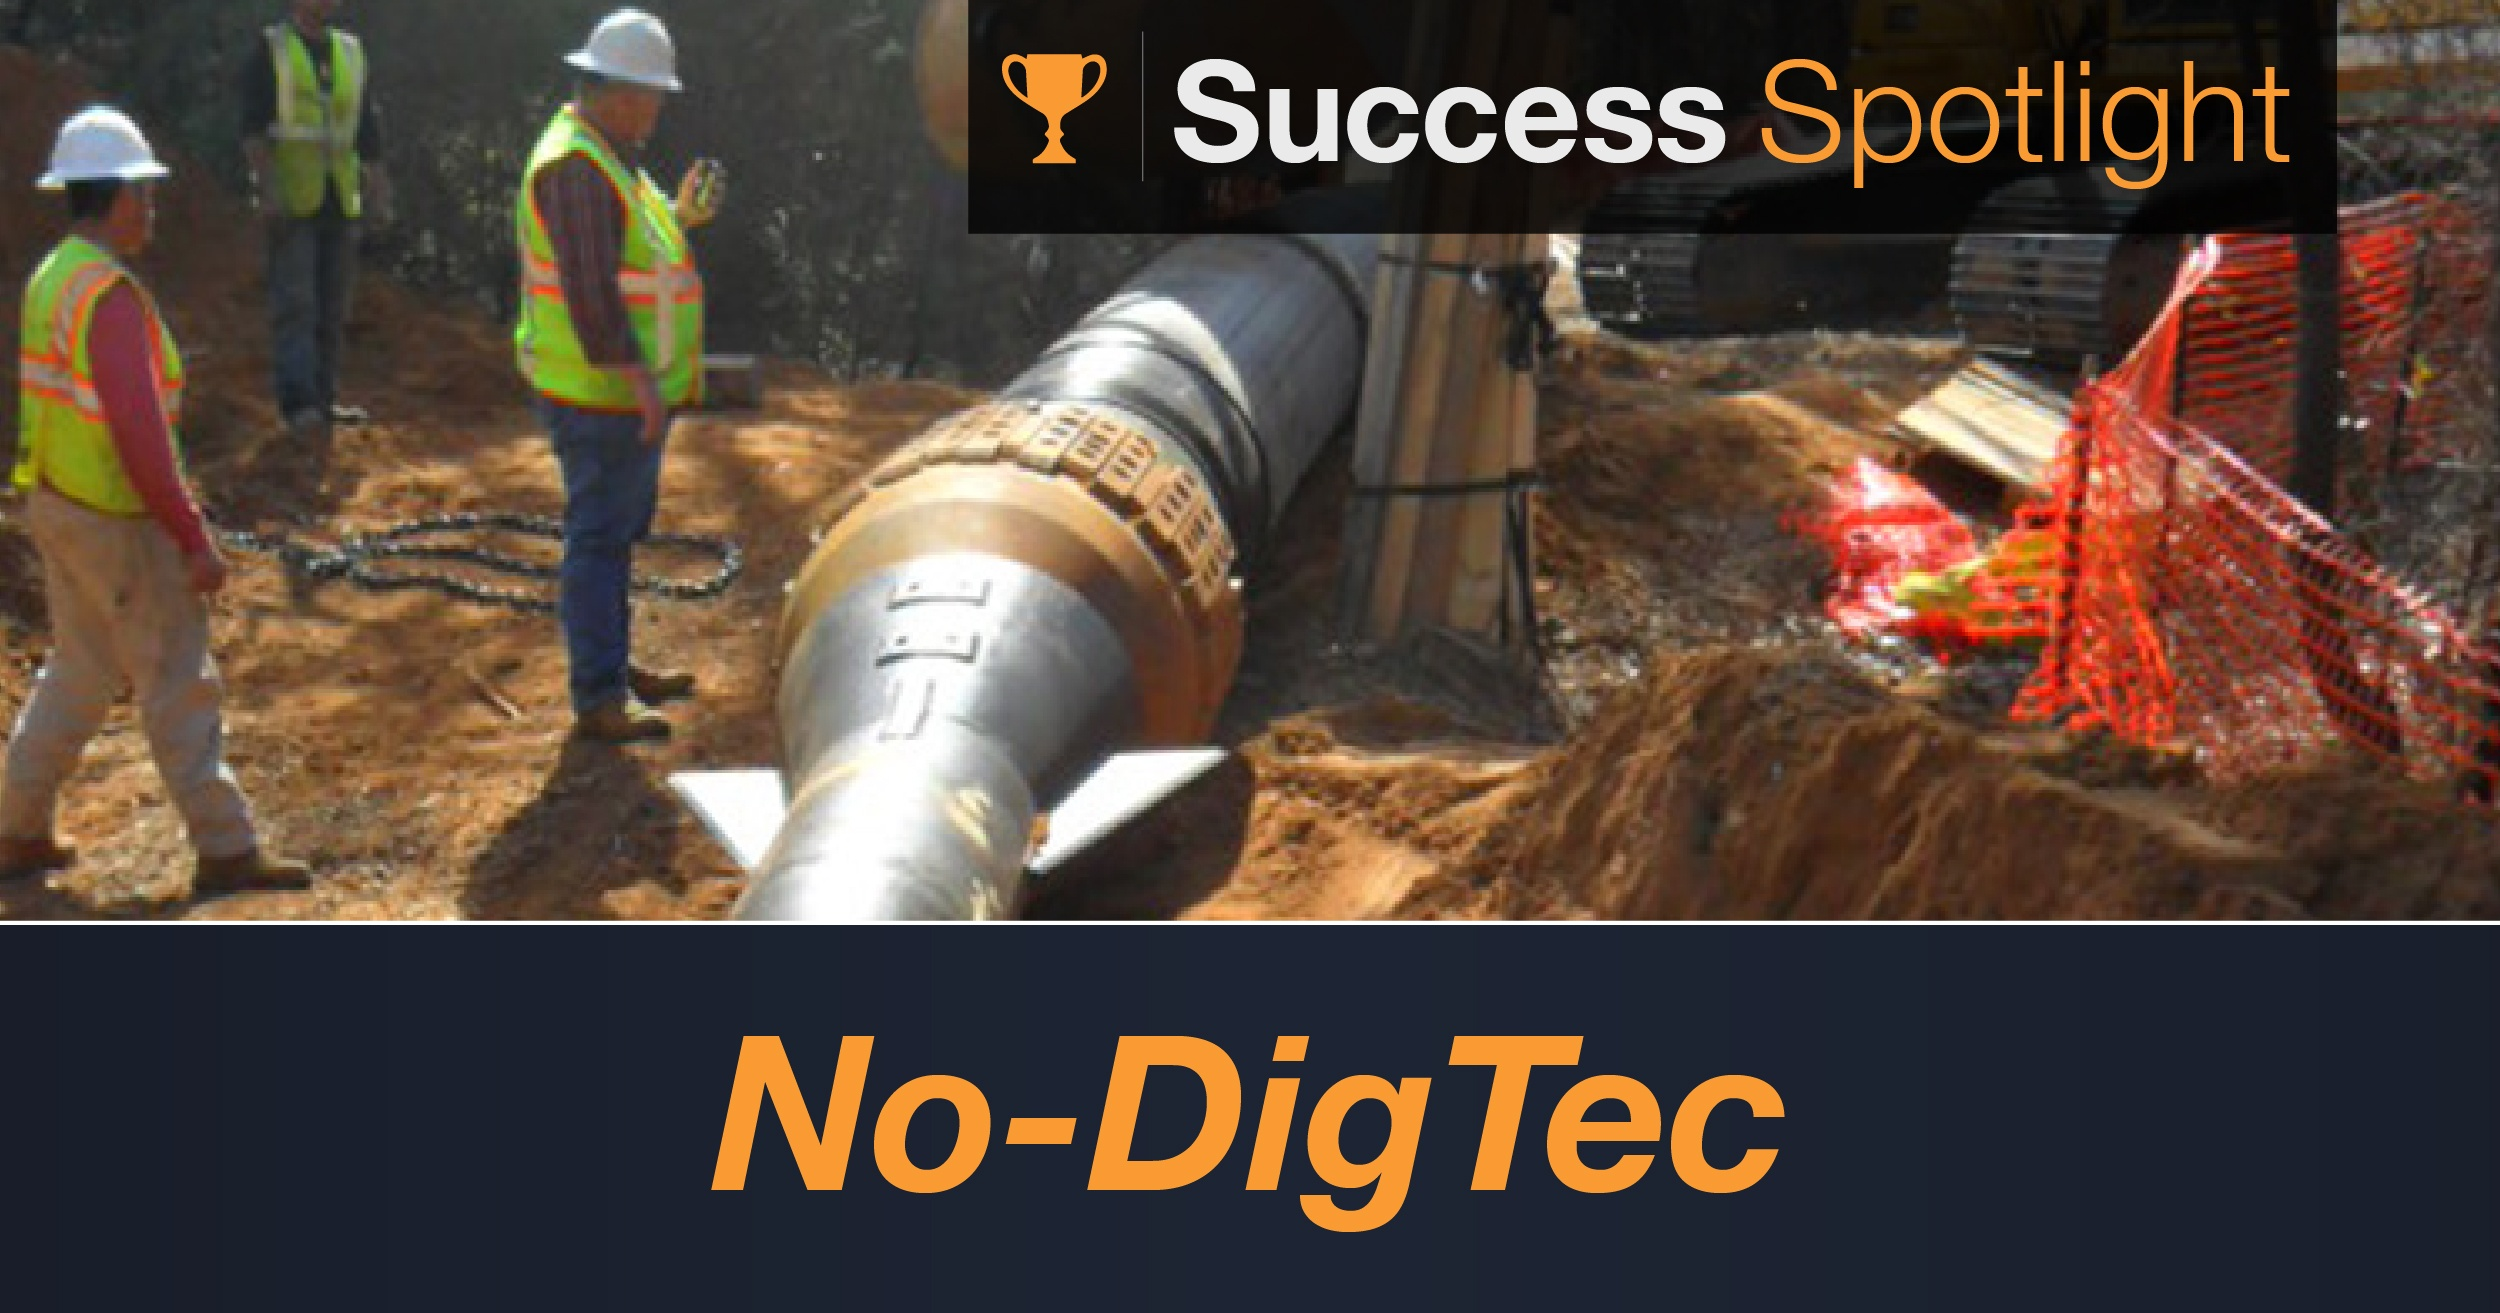 Success Spotlight: No-Dig Tec